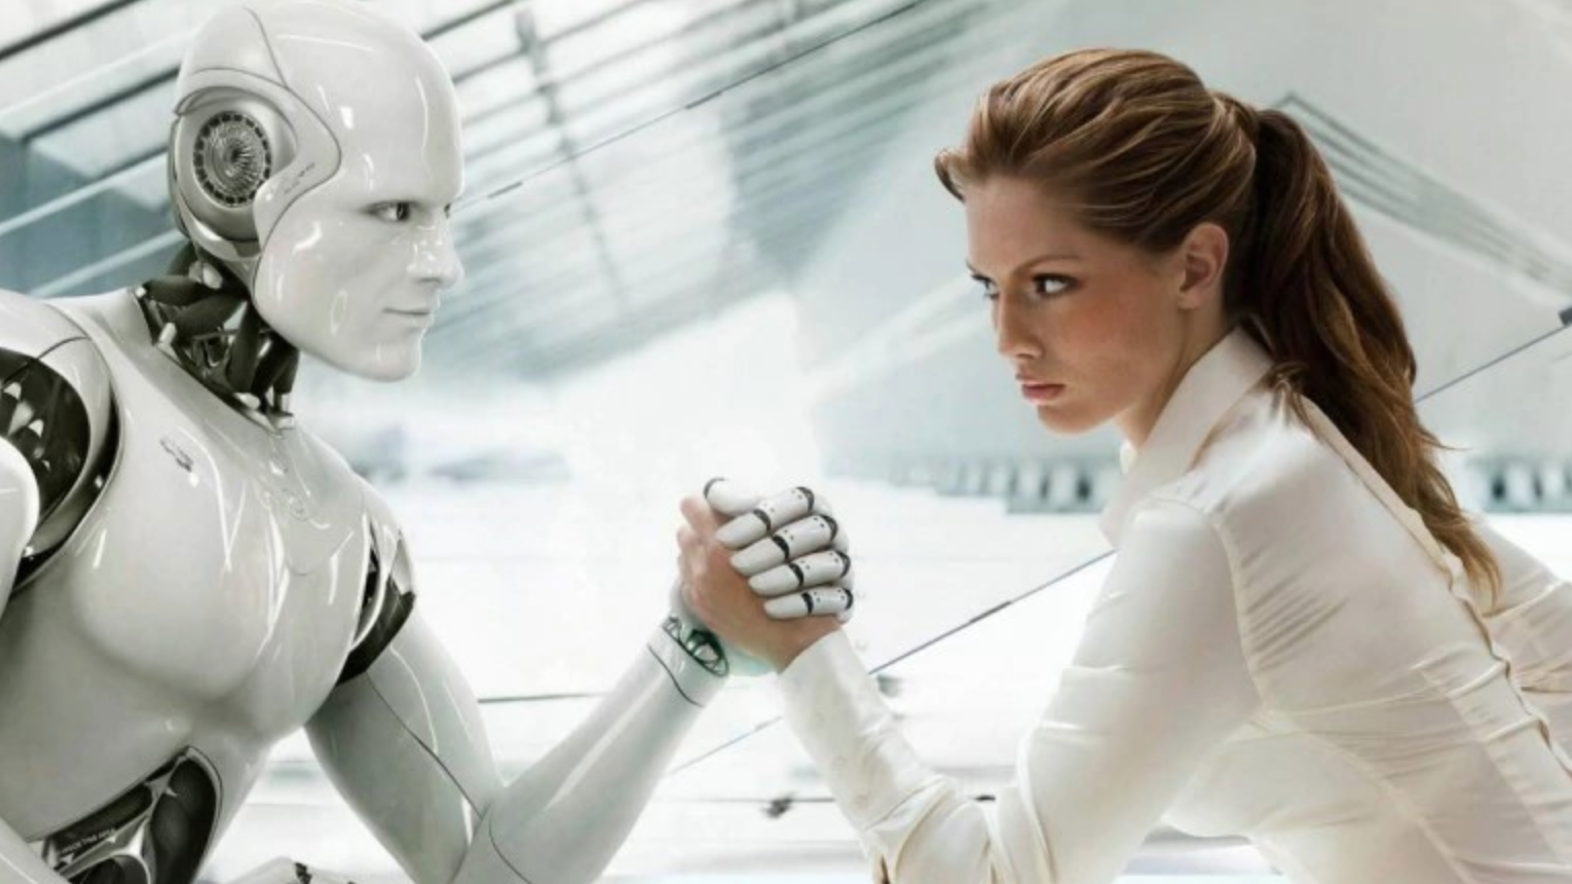 Mirror, Mirror: How Technology Re-Produces Challenges Concerning Human Relations